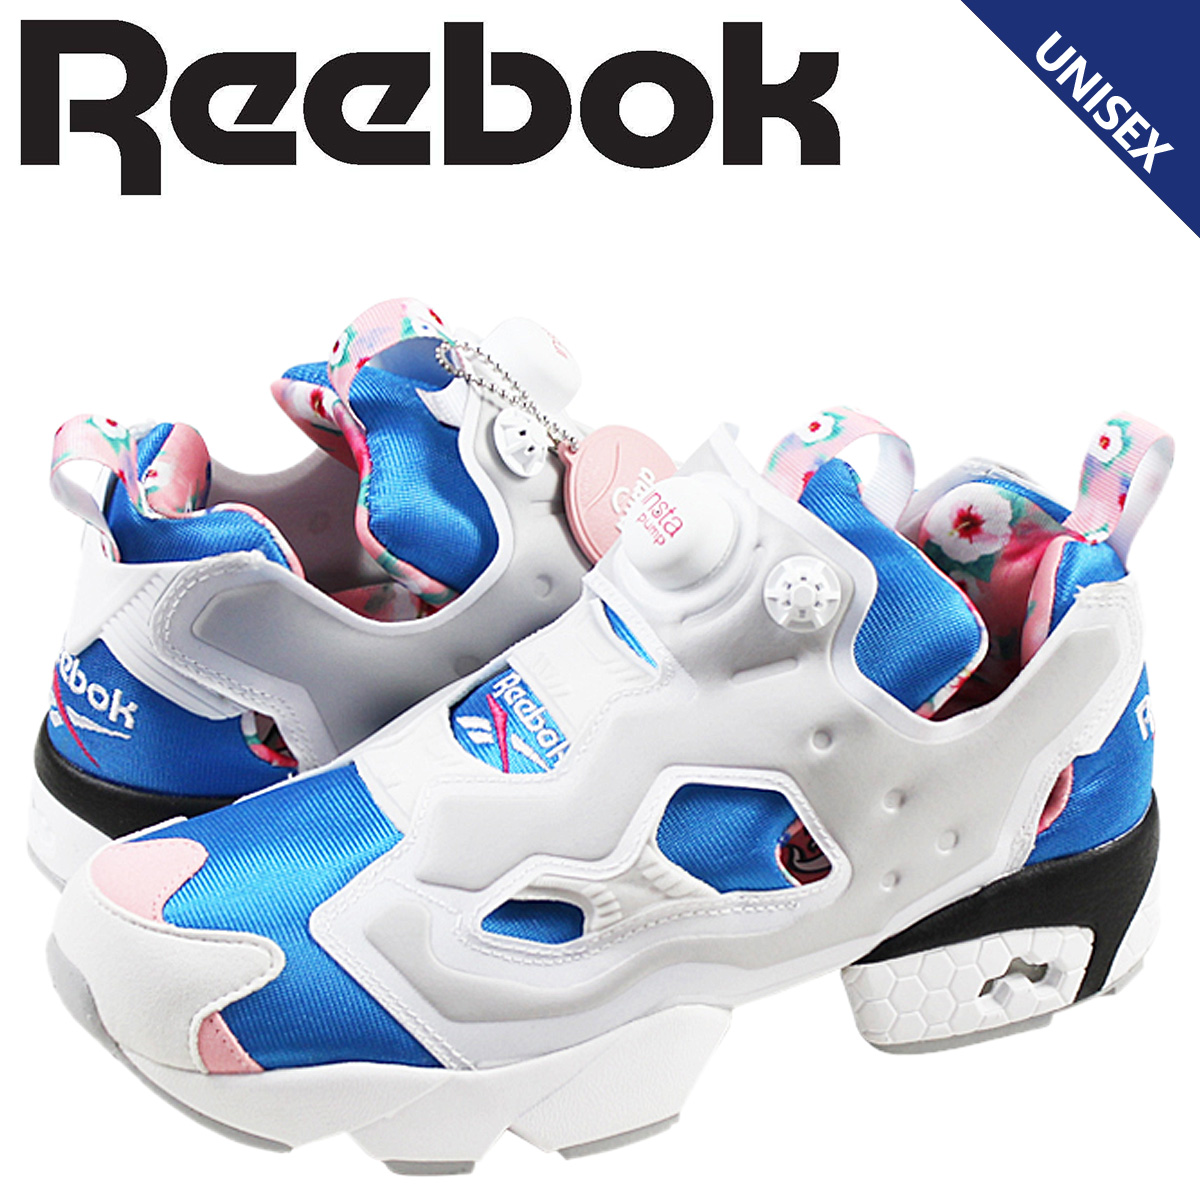 reebok insta pump price in south africa